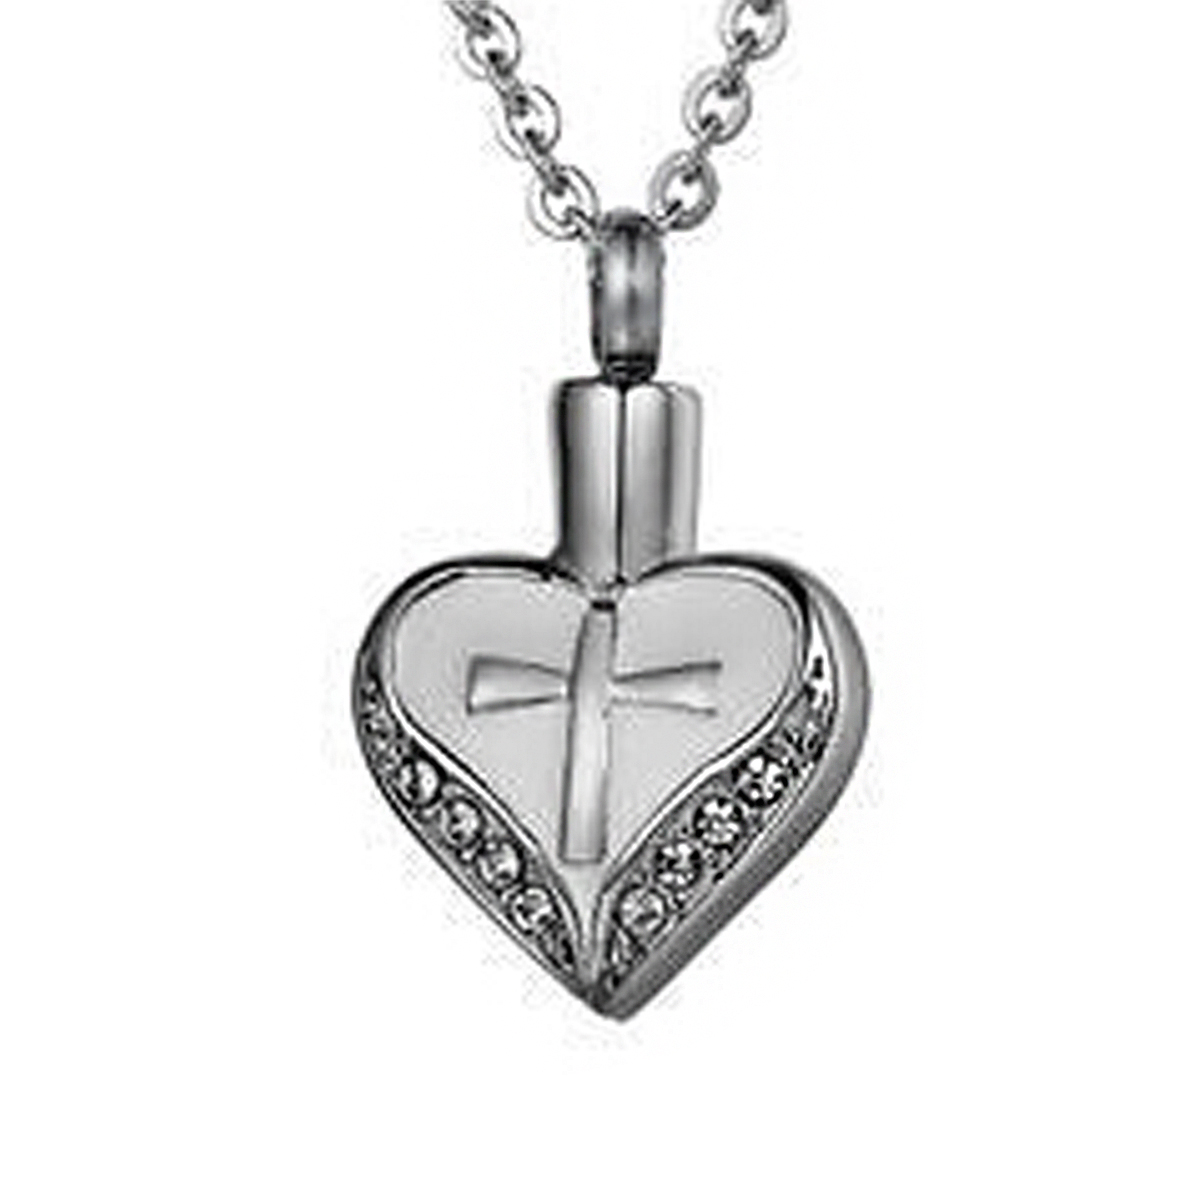 grey designs resin heart pendant memorial limelight photo pet on products